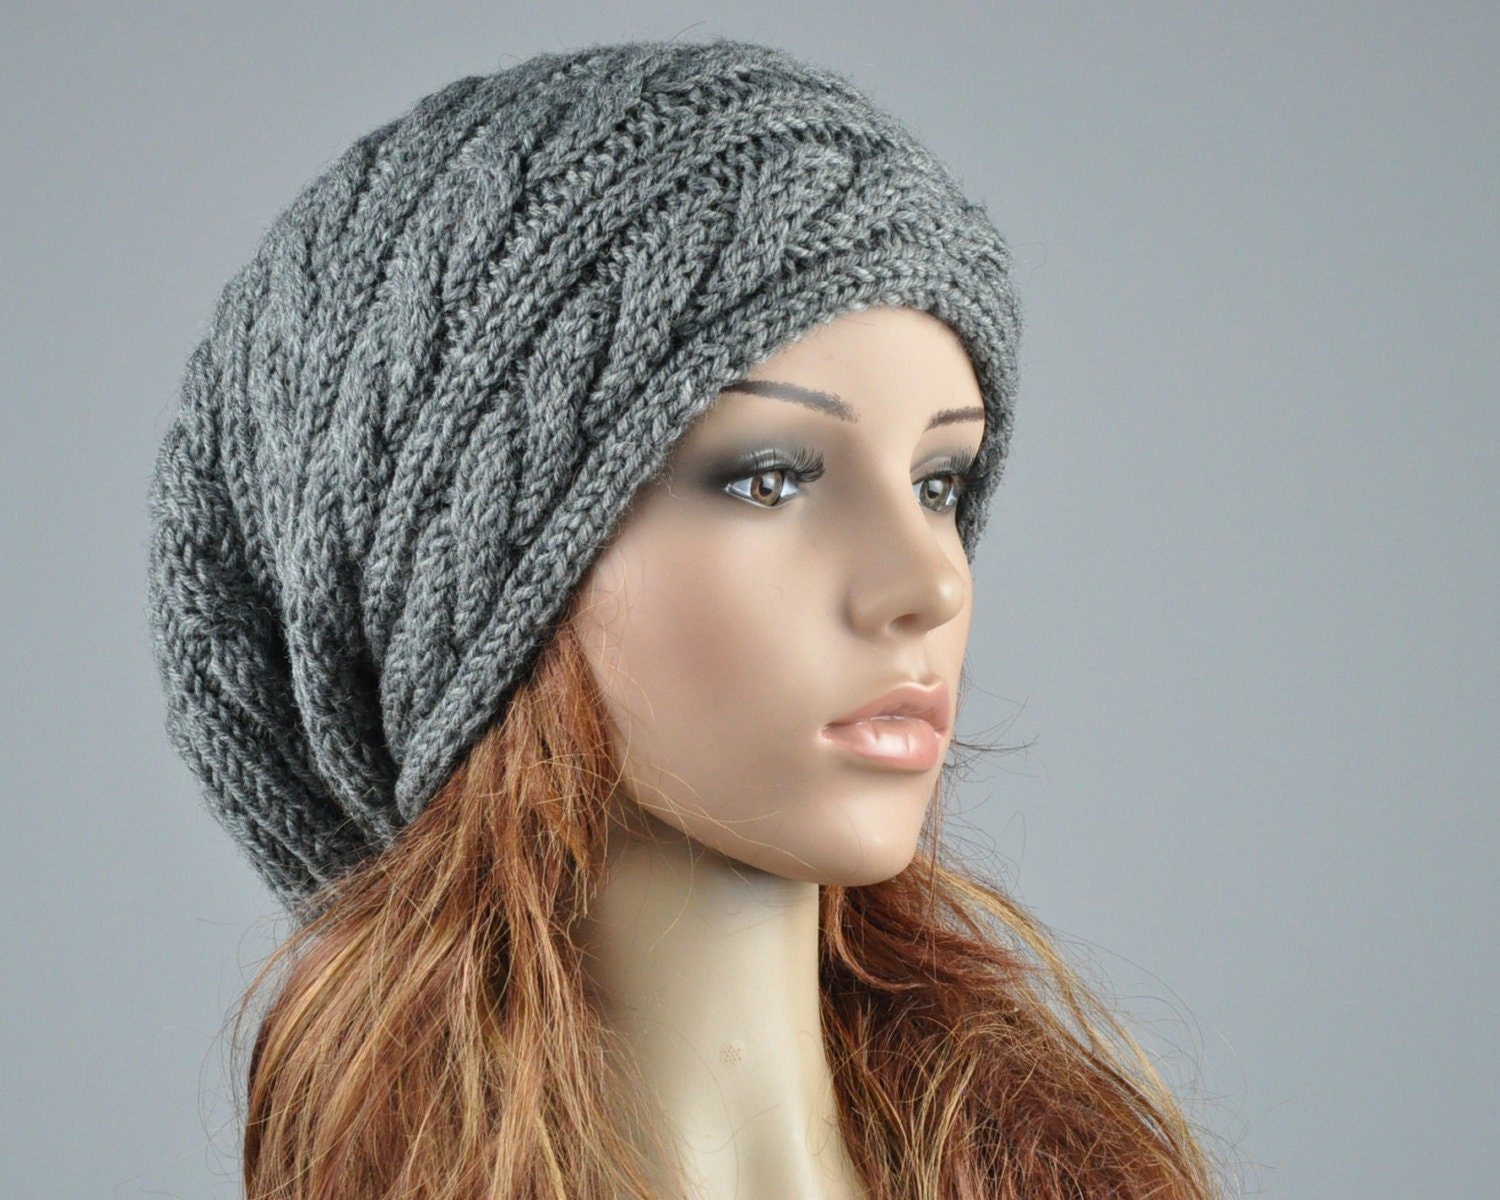 Hand knit hat Charcoal hat slouchy hat cable pattern by MaxMelody